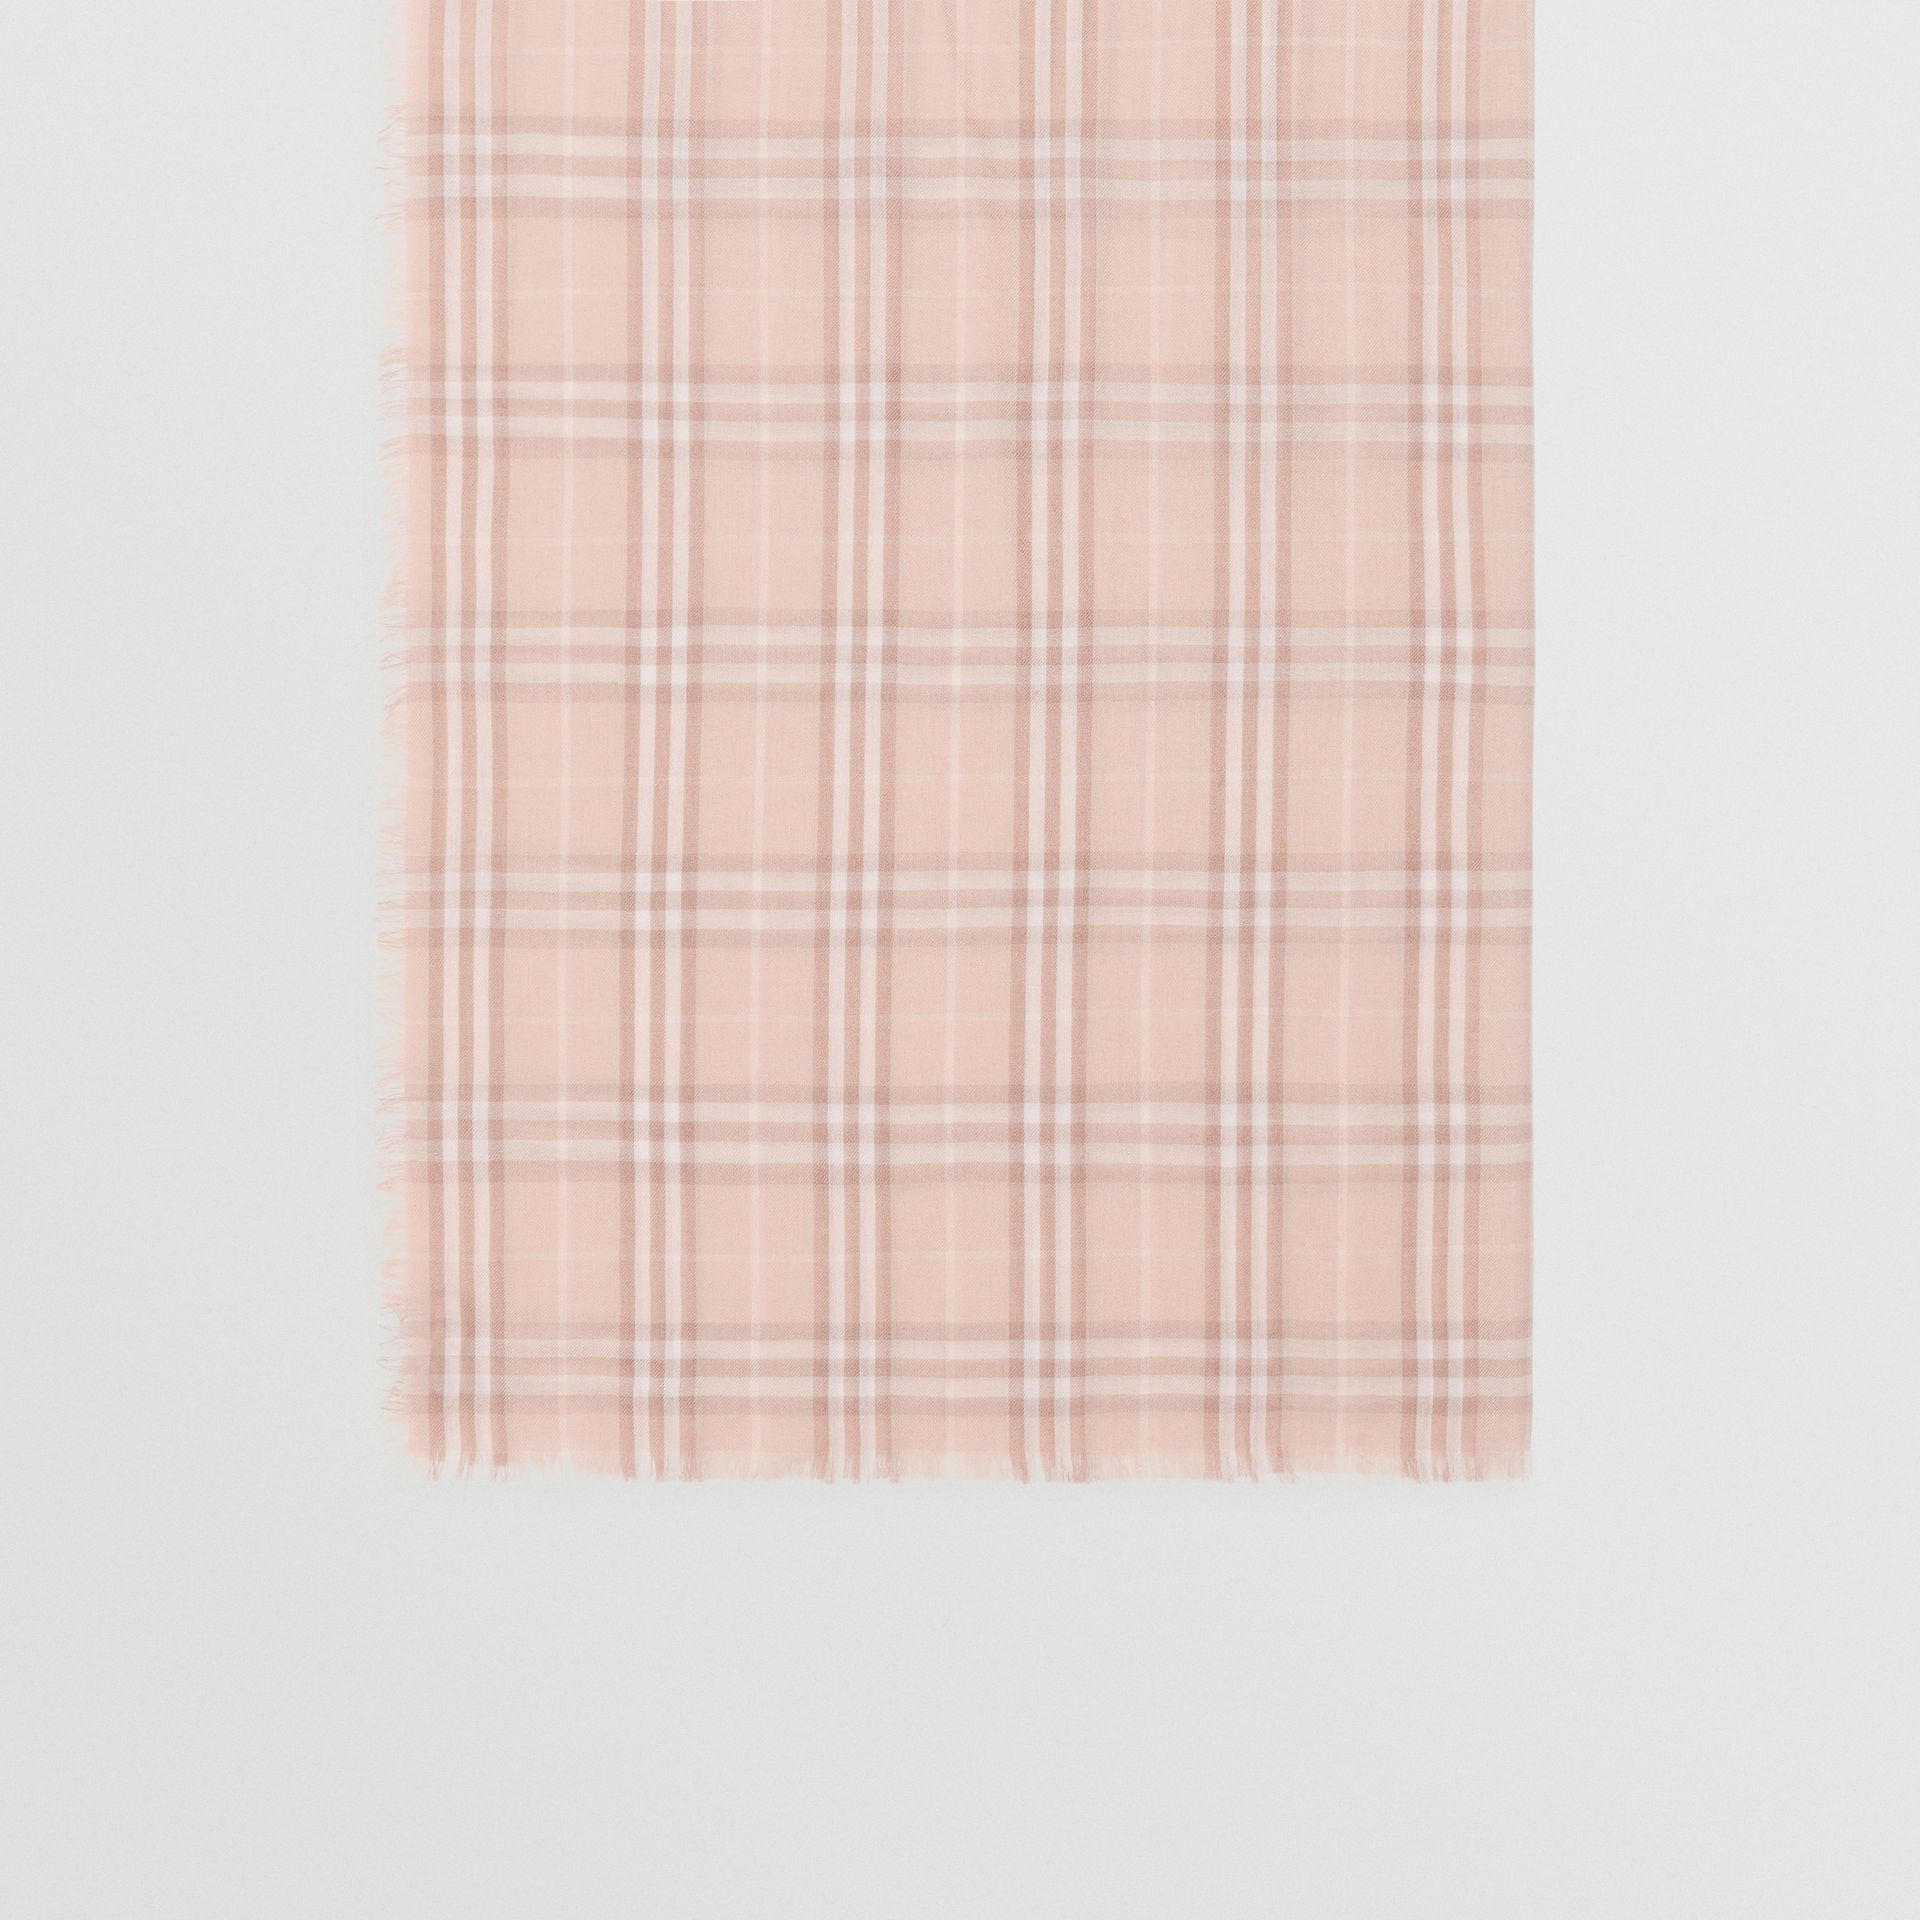 Embroidered Vintage Check Lightweight Cashmere Scarf in Soft Peach | Burberry - gallery image 2